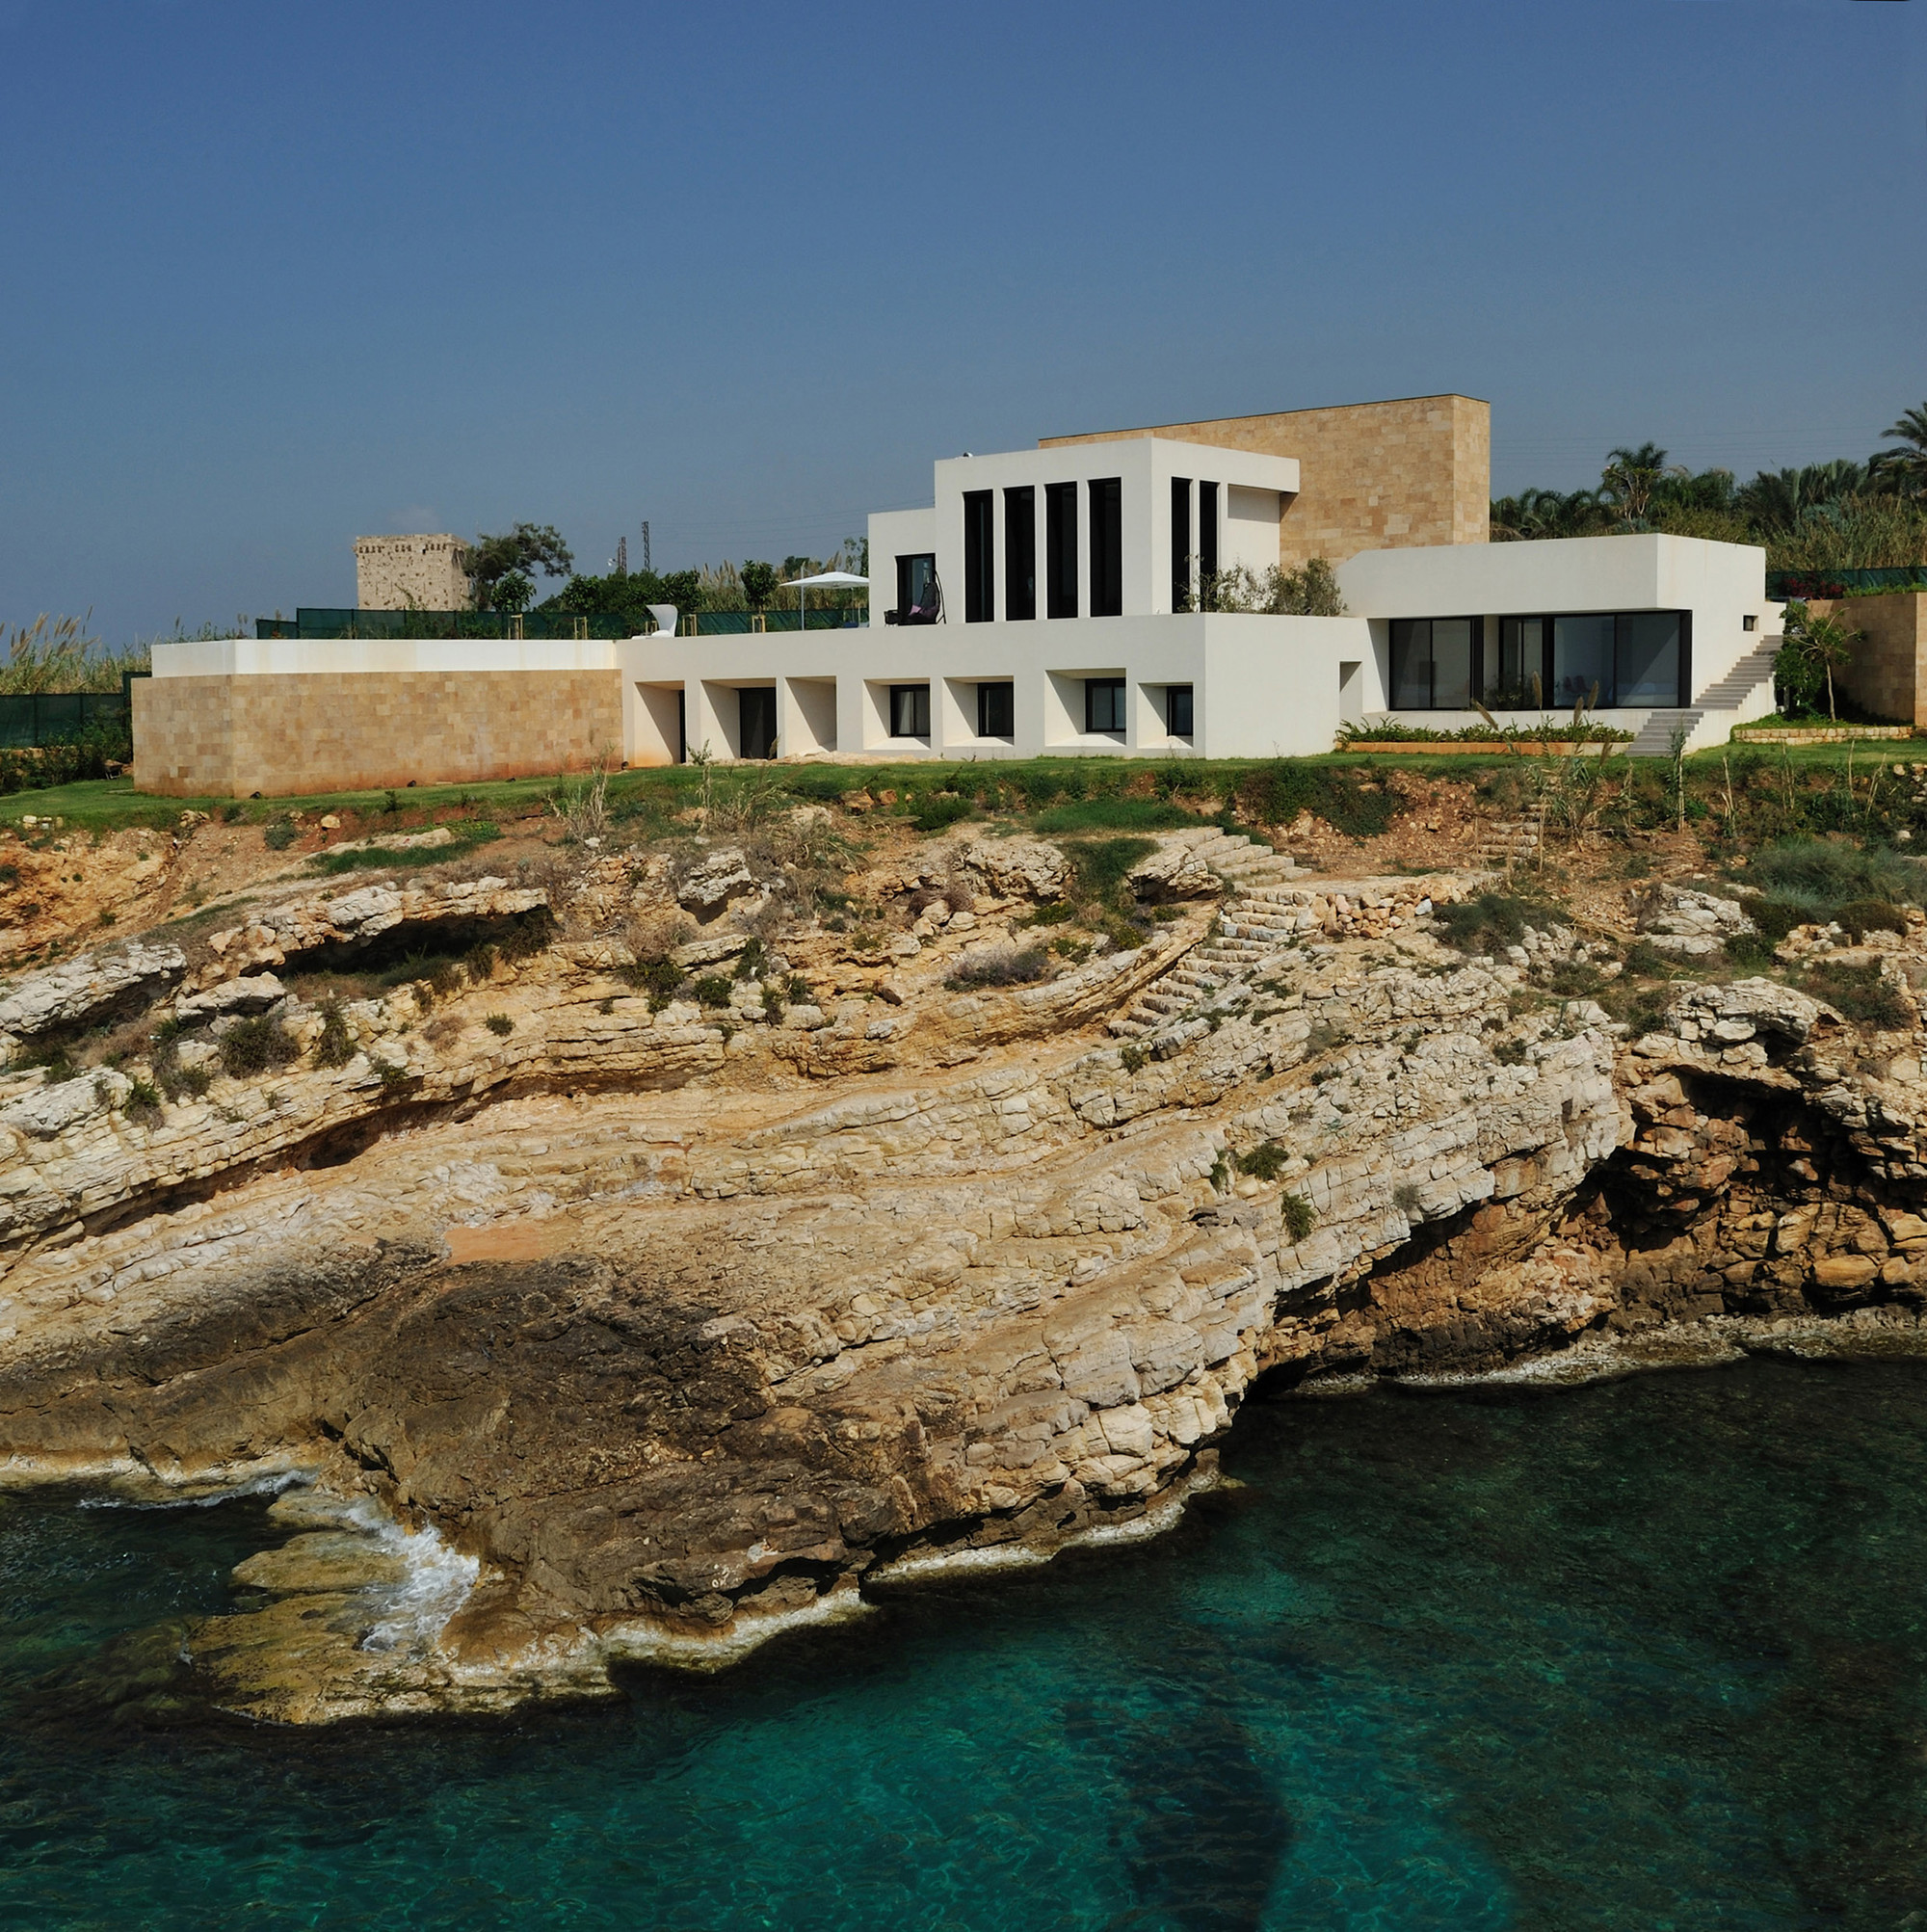 Fidar Beach House / Raed Abillama Architects, © Géraldine Bruneel